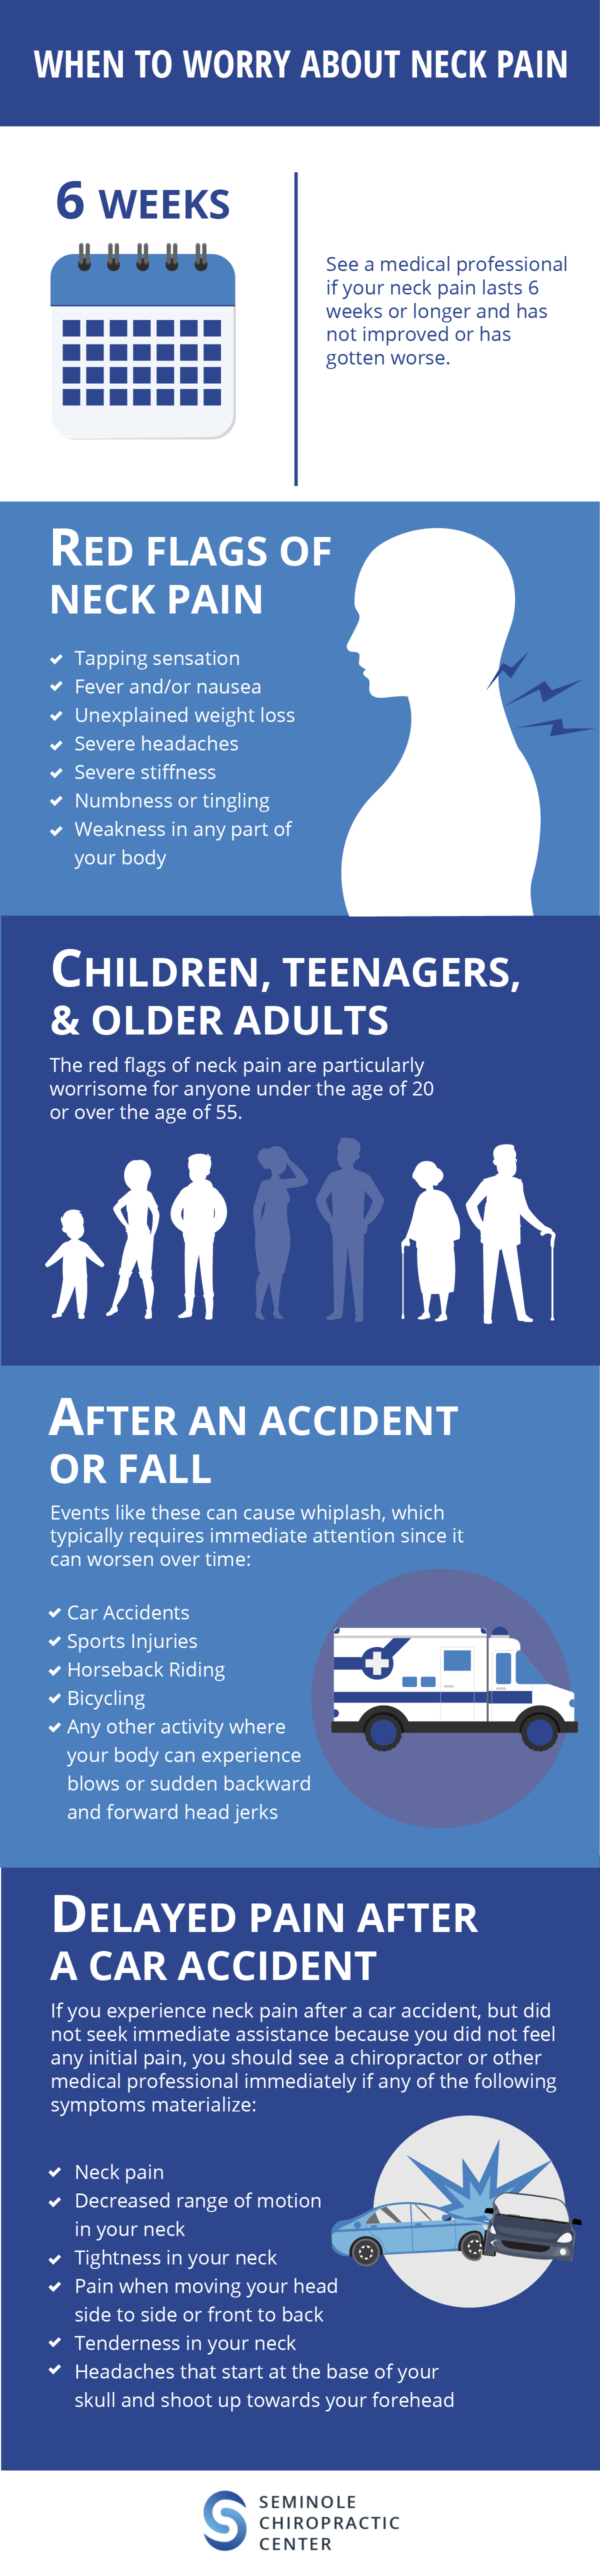 when to worry about neck pain infographic